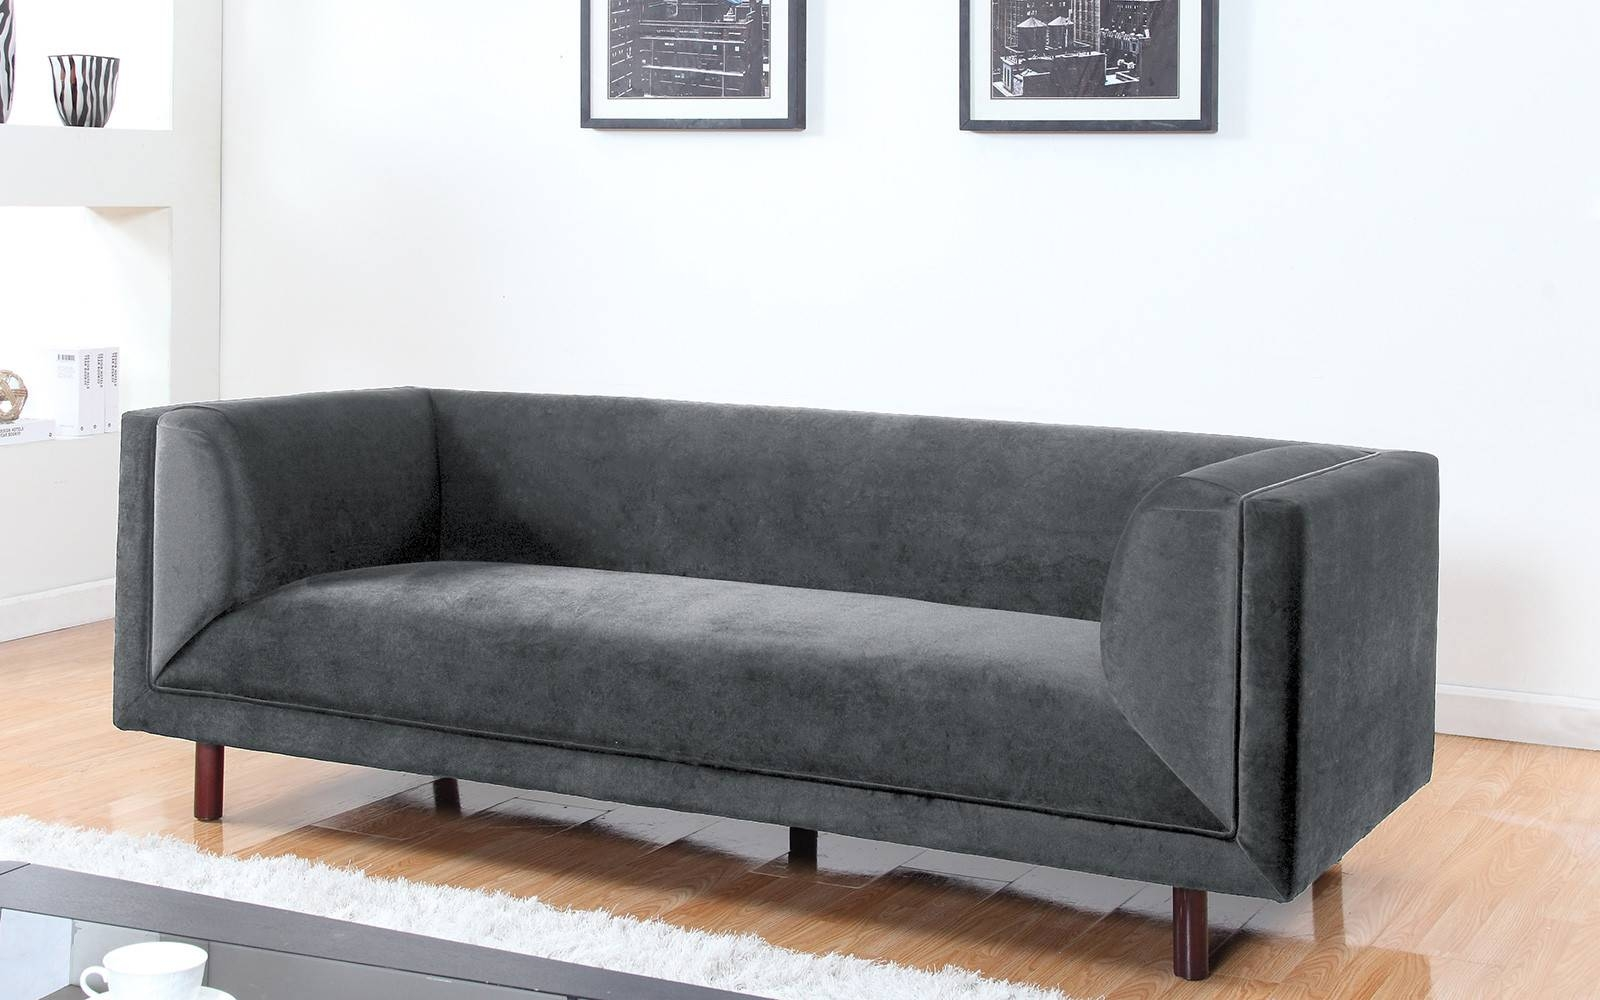 Modern Contemporary Large 3 Seater Velvet Sofa - Walmart pertaining to Modern 3 Seater Sofas (Image 21 of 30)